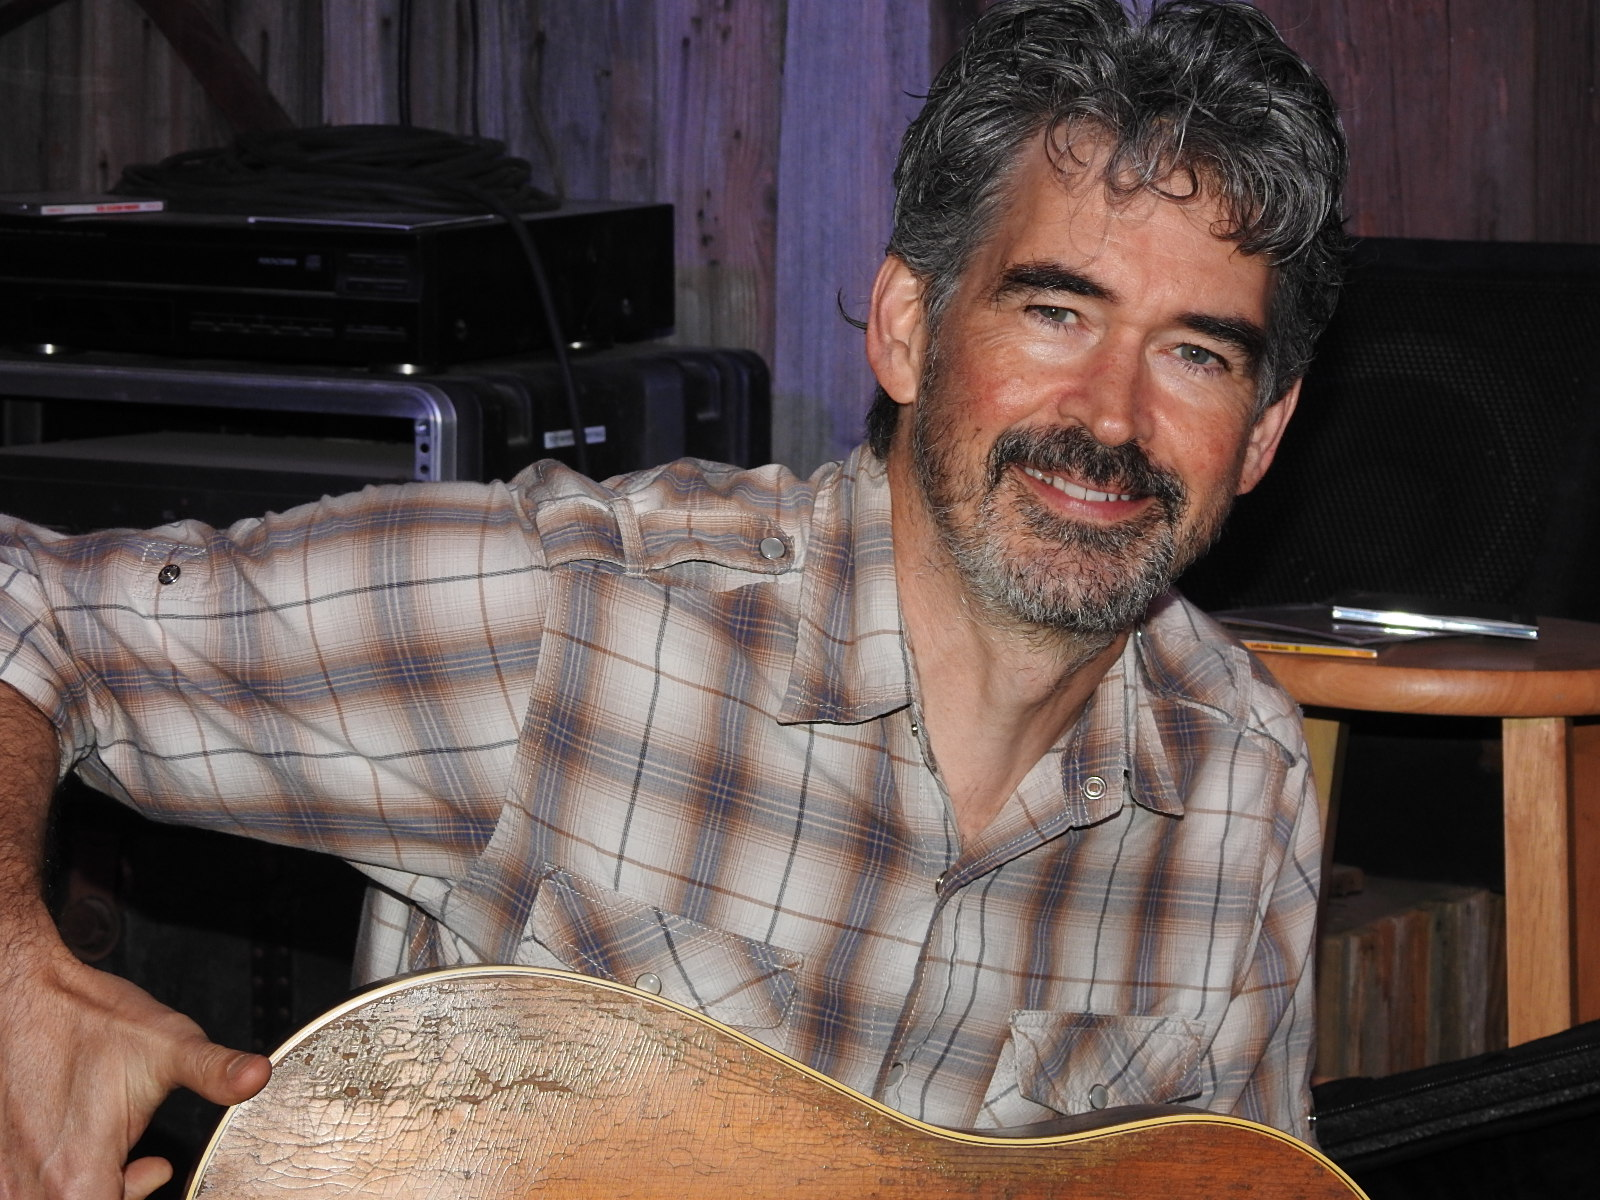 Slaid_Cleaves_Photos_by_Paty_0656.JPG